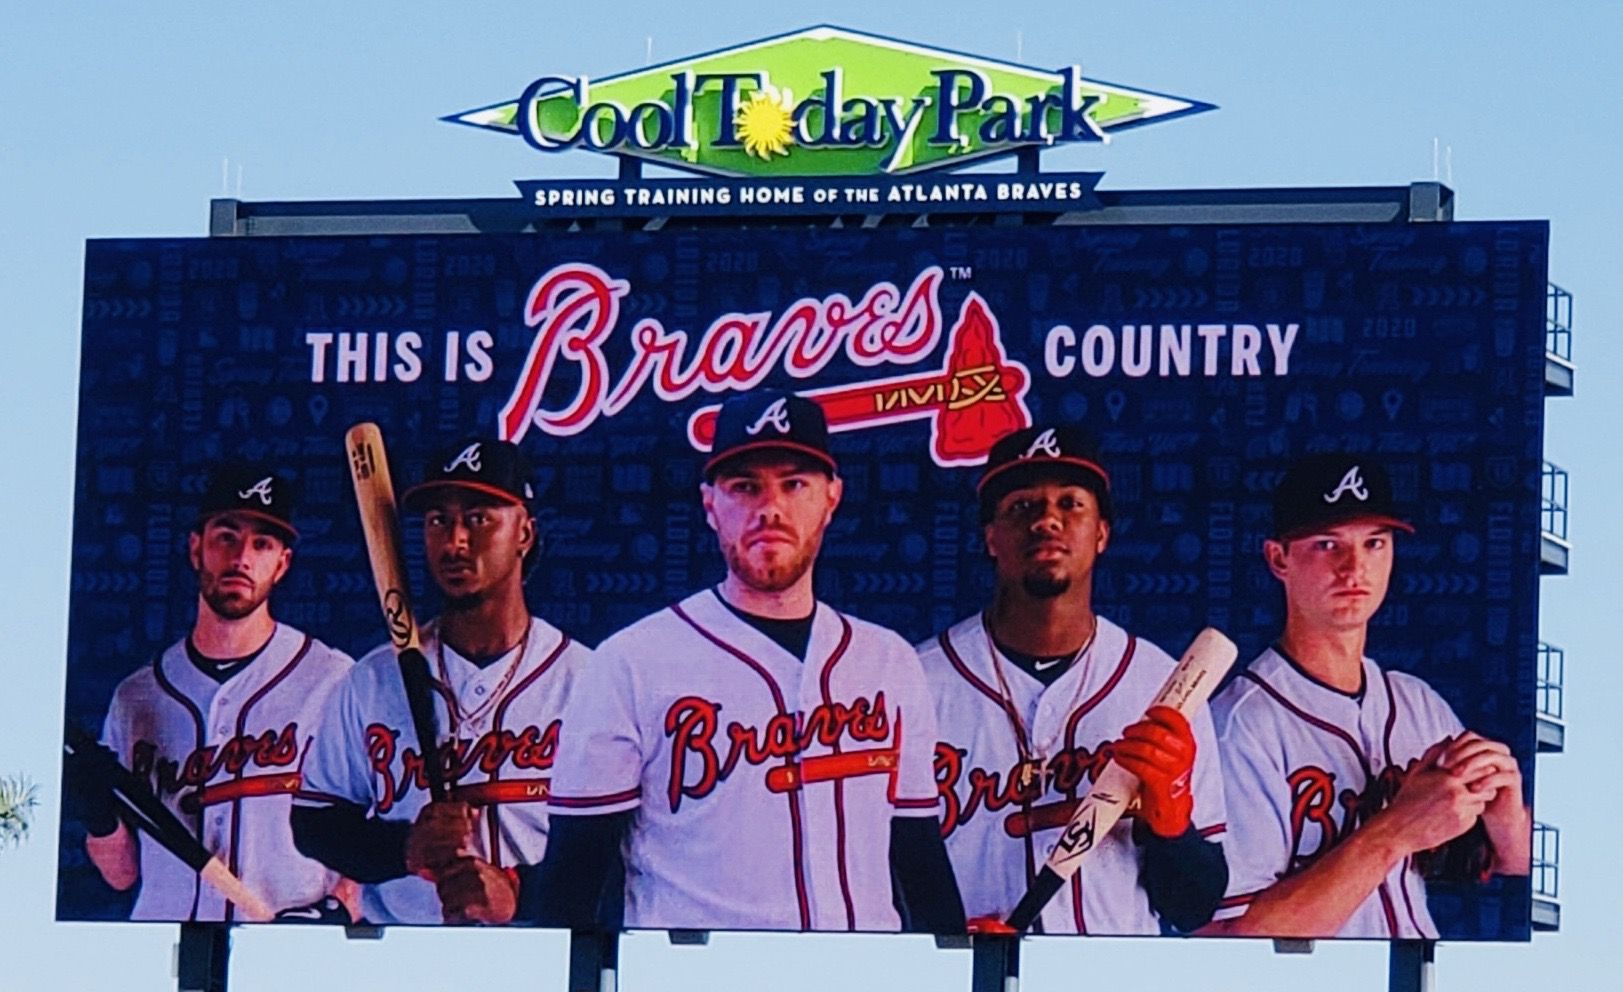 Pin by Amy Murphy on Atlanta Braves in 2020 Braves